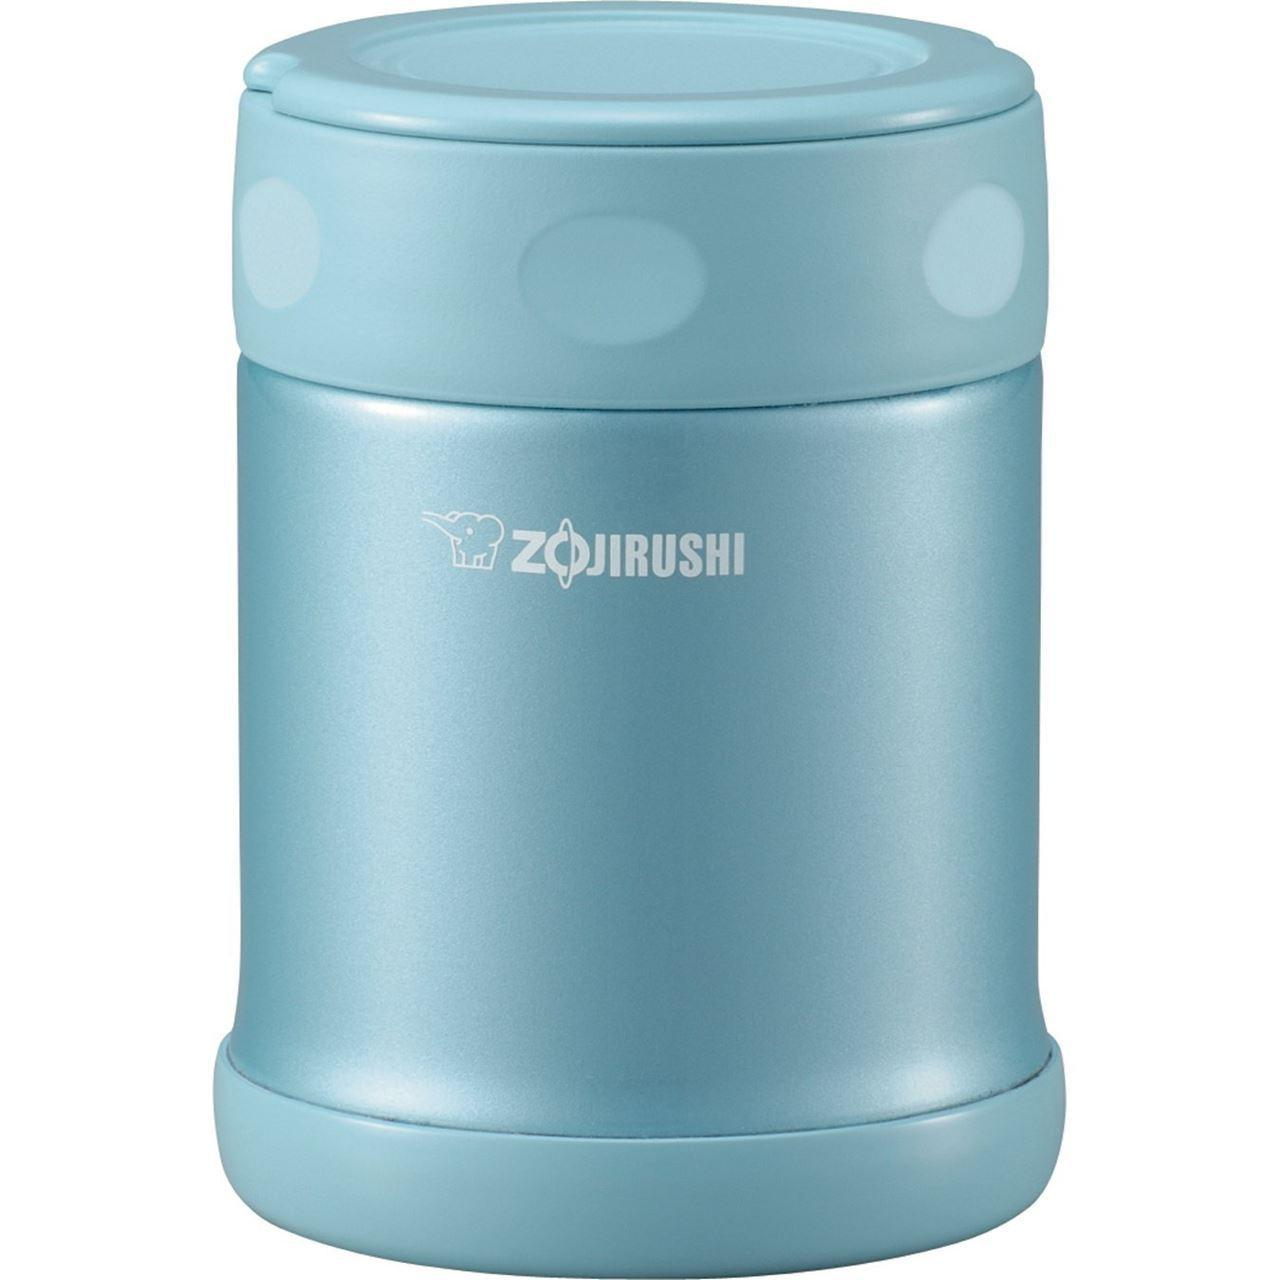 $22.99 Zojirushi SW-EAE35AB Stainless Steel Food Jar, 12-Ounce/0.35-Liter, Aqua Blue